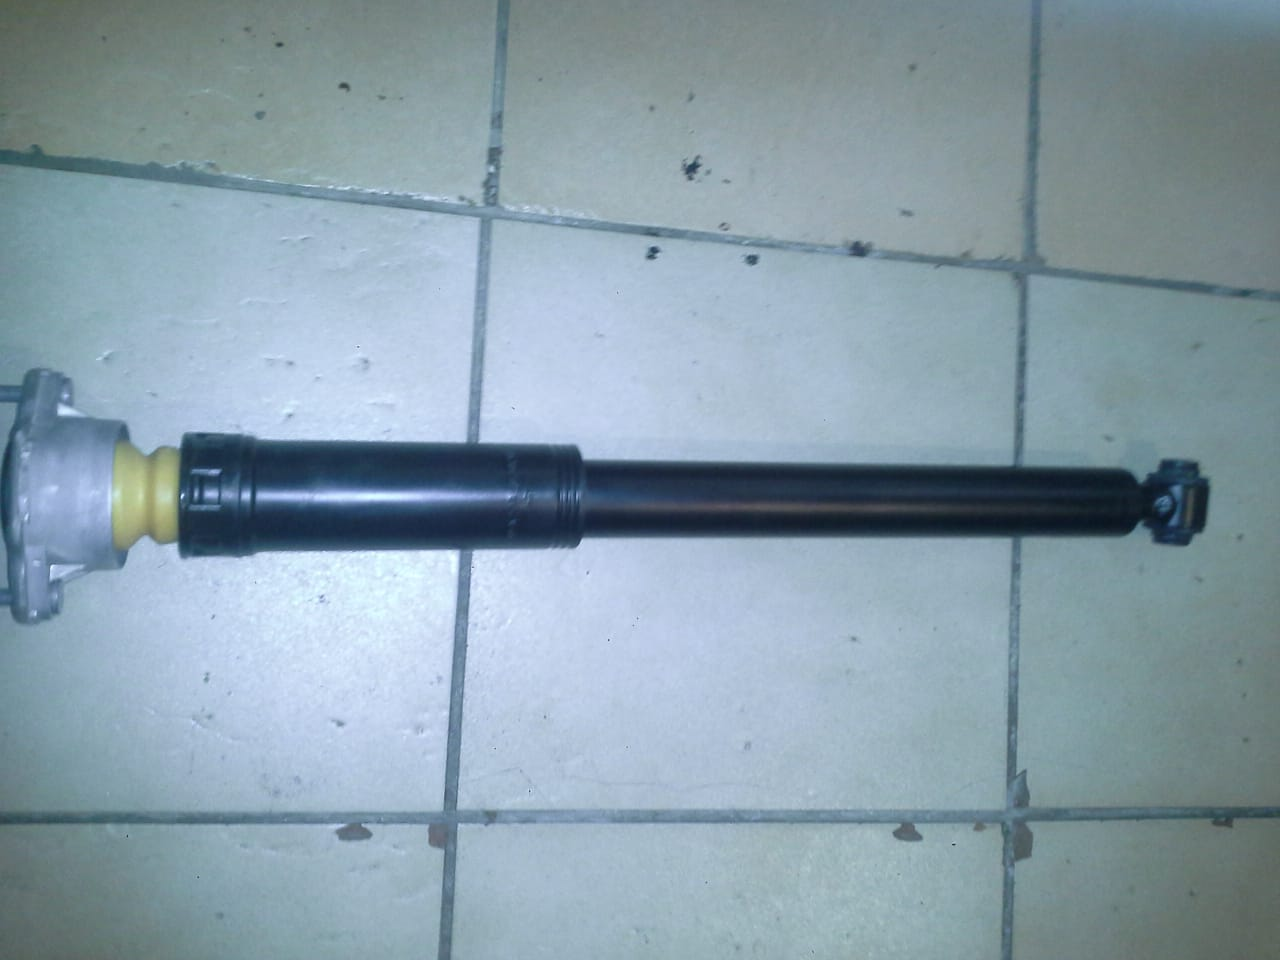 Mercedes Benz W204  shocks  Available for sale